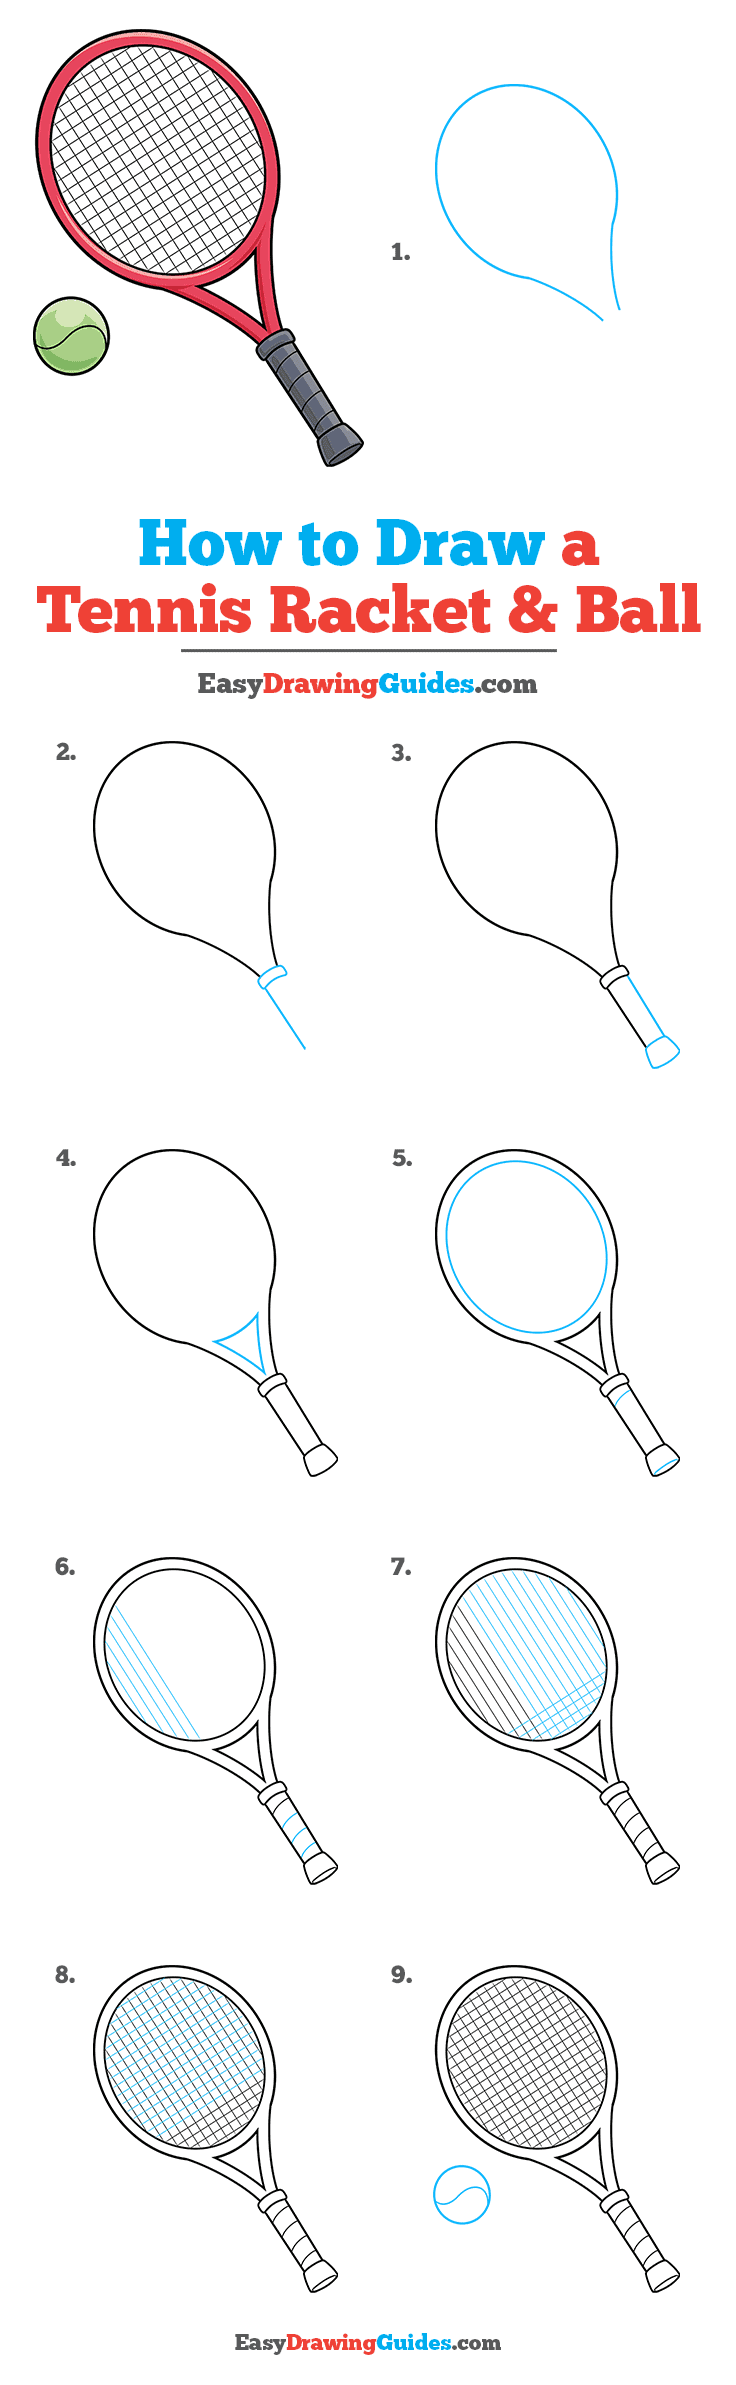 how to Draw a Tennis Racket and Ball Step by Step Tutorial Image